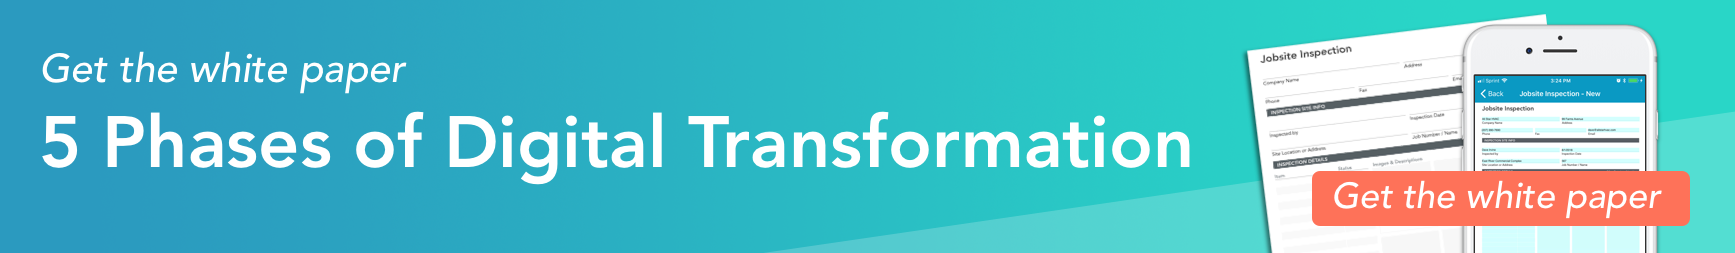 Get the free white paper the 5 phases of digital transformation